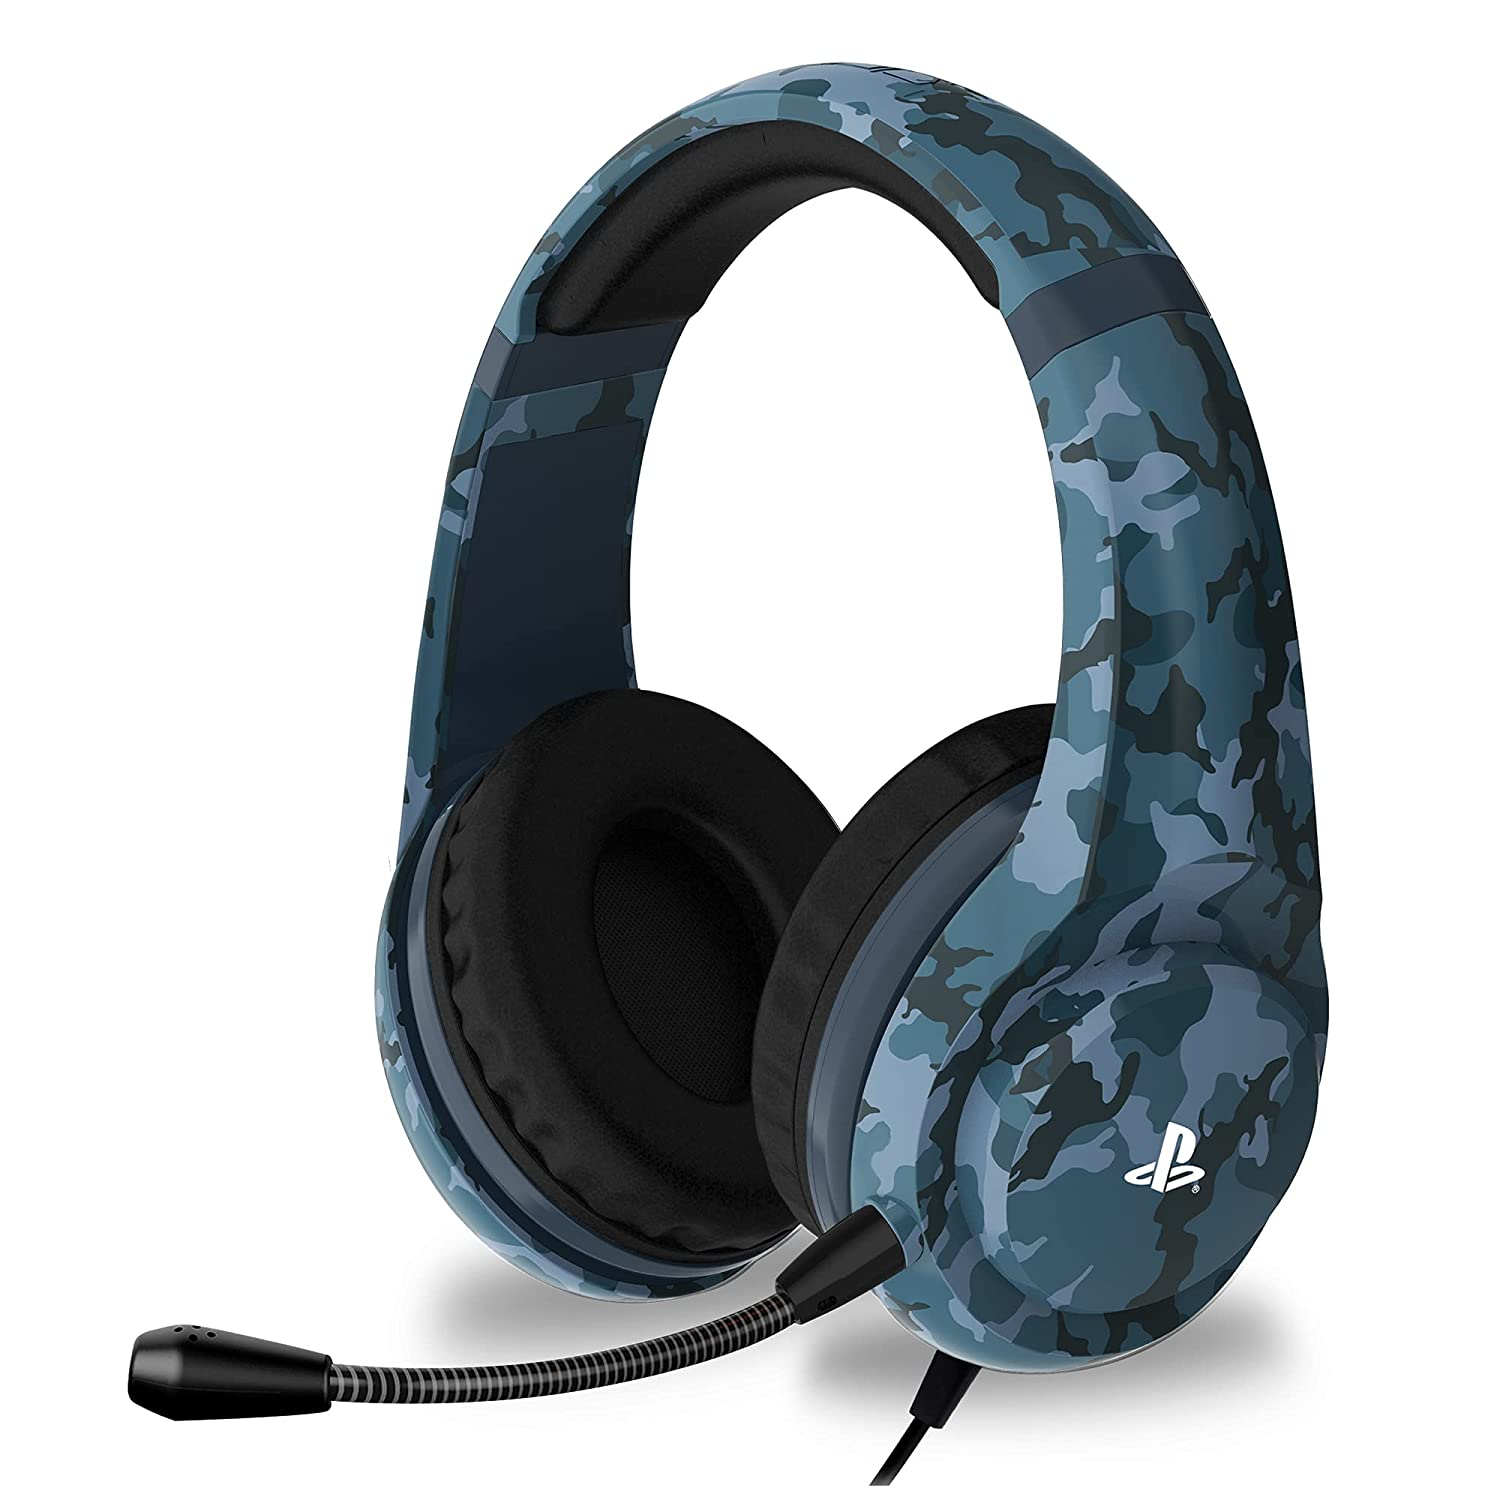 Pro4-70 Stereo Gaming Headset - Max 78% OFF Midnight Max 86% OFF Edition PS4 Camo